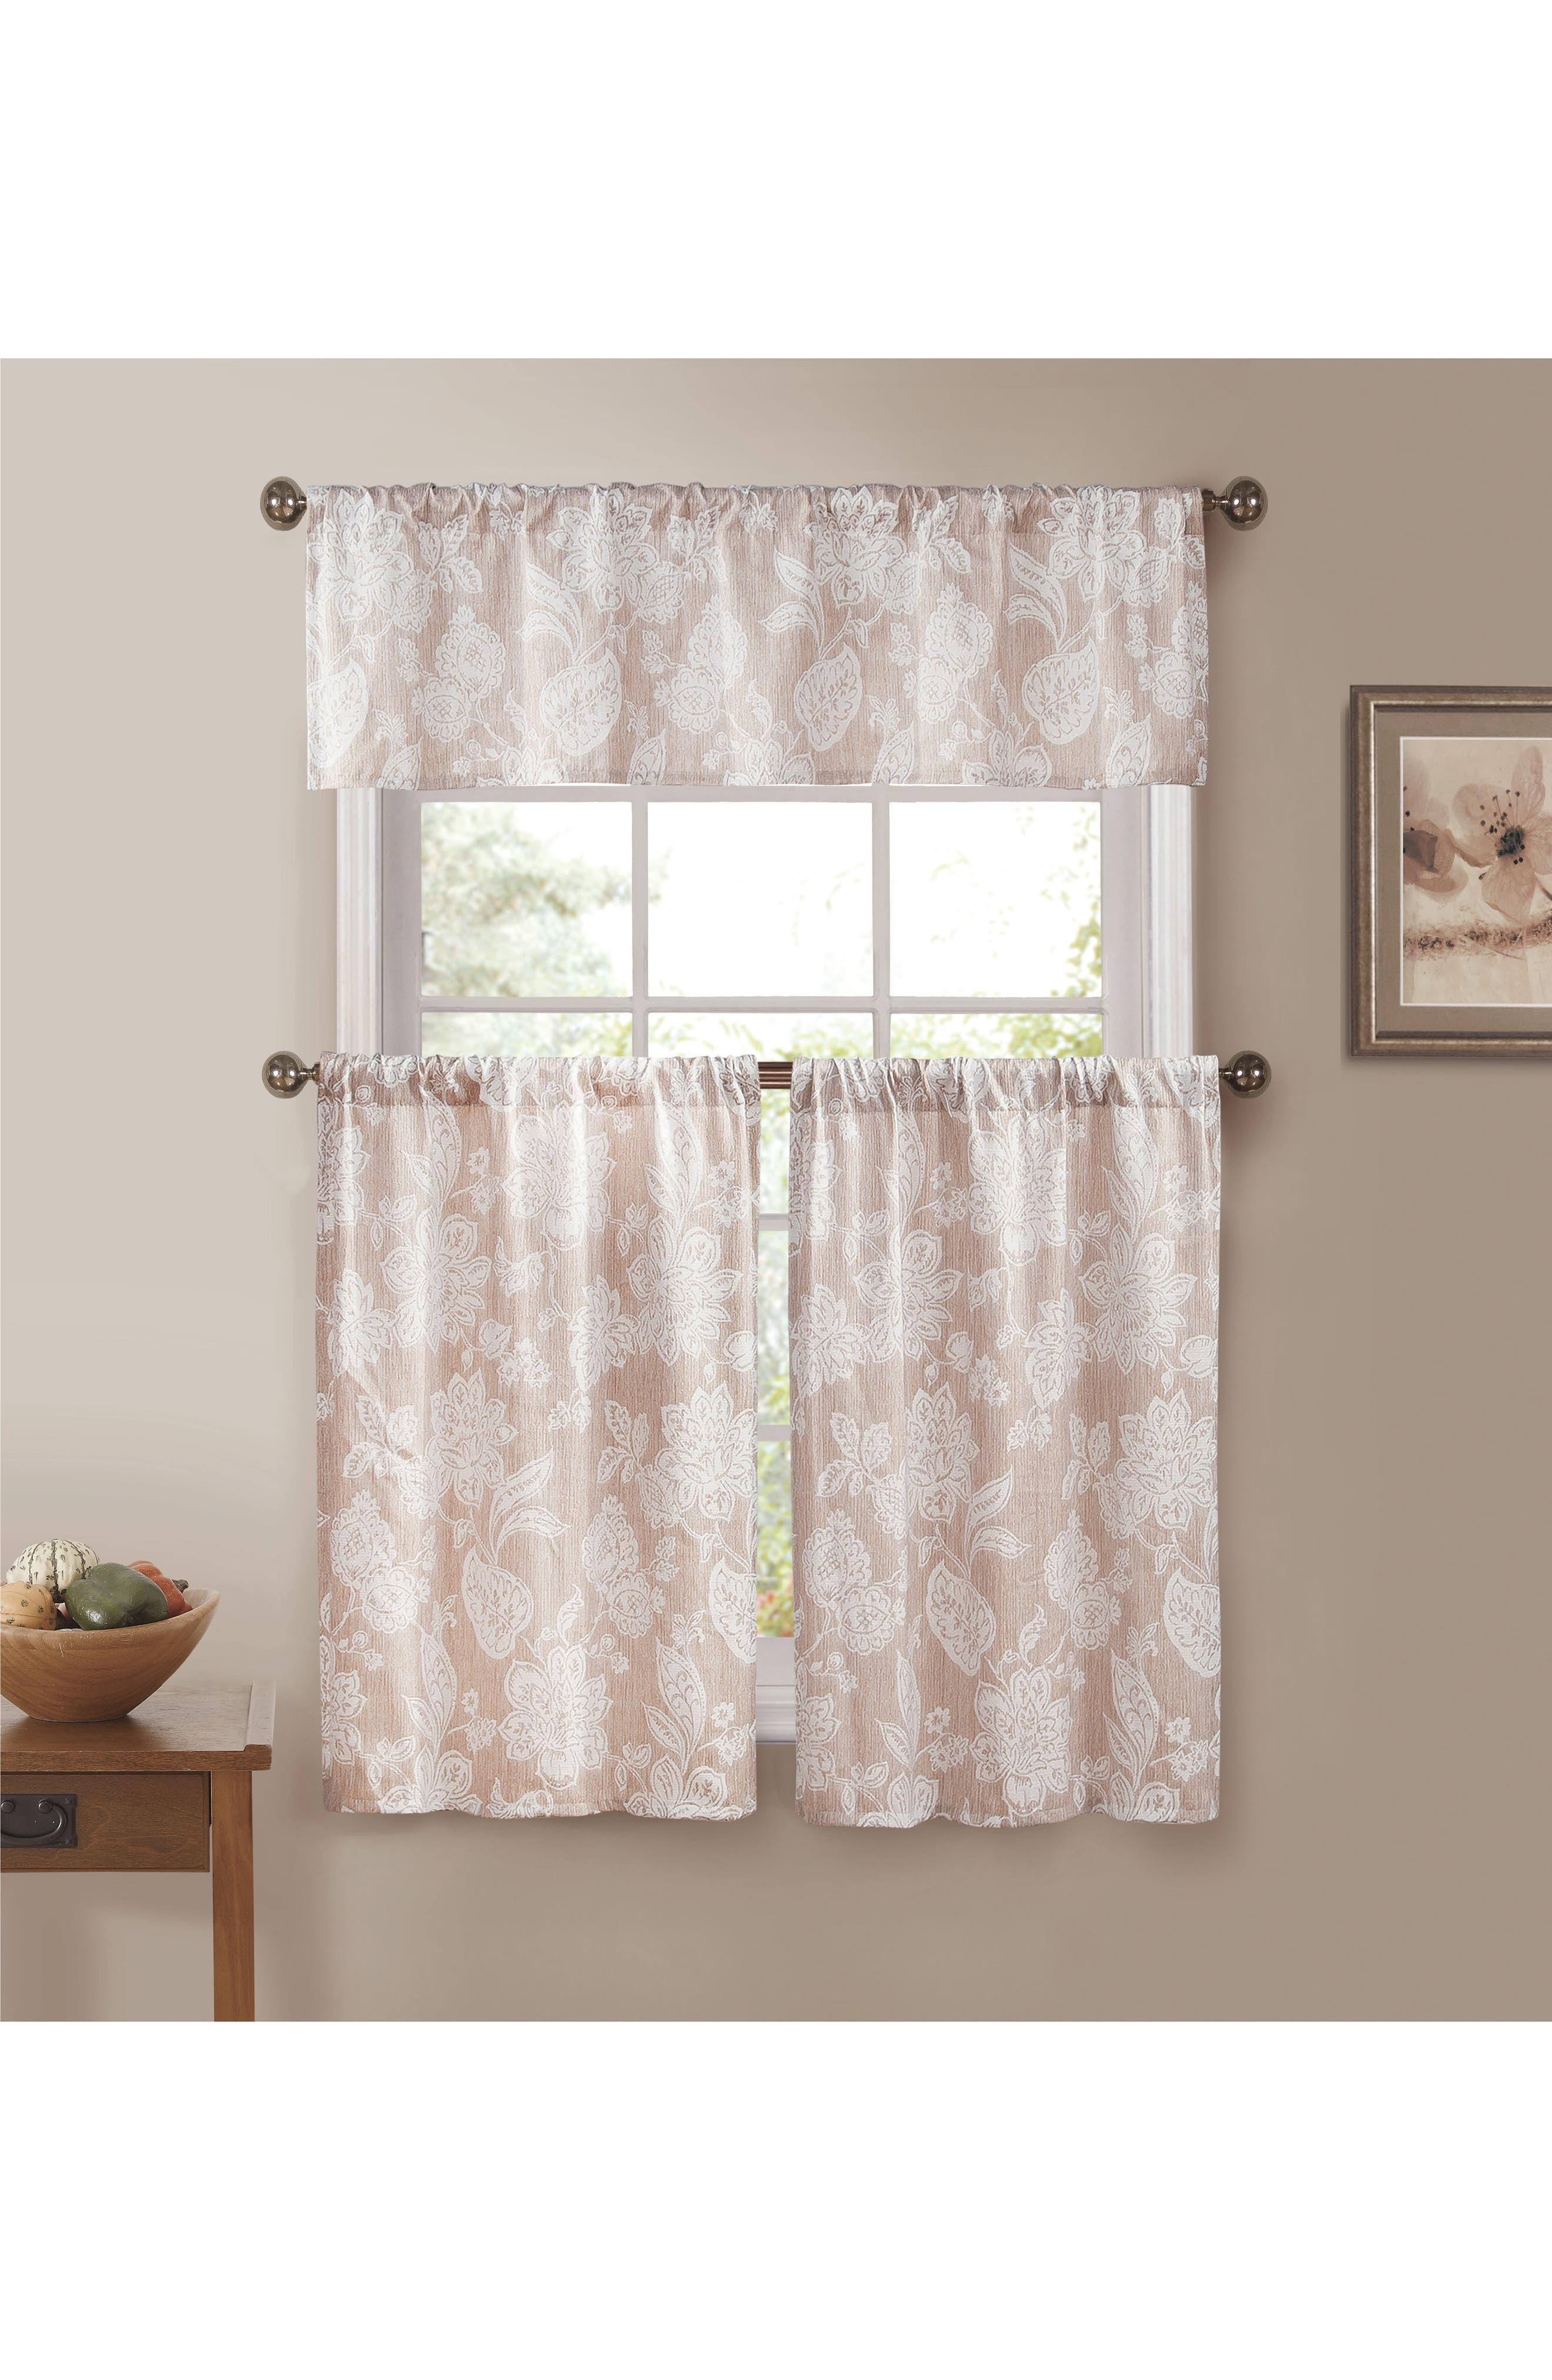 Ewva Set of 3 Tiered Jacquard Small Pole Top Window Panels,                             Main thumbnail 1, color,                             Taupe